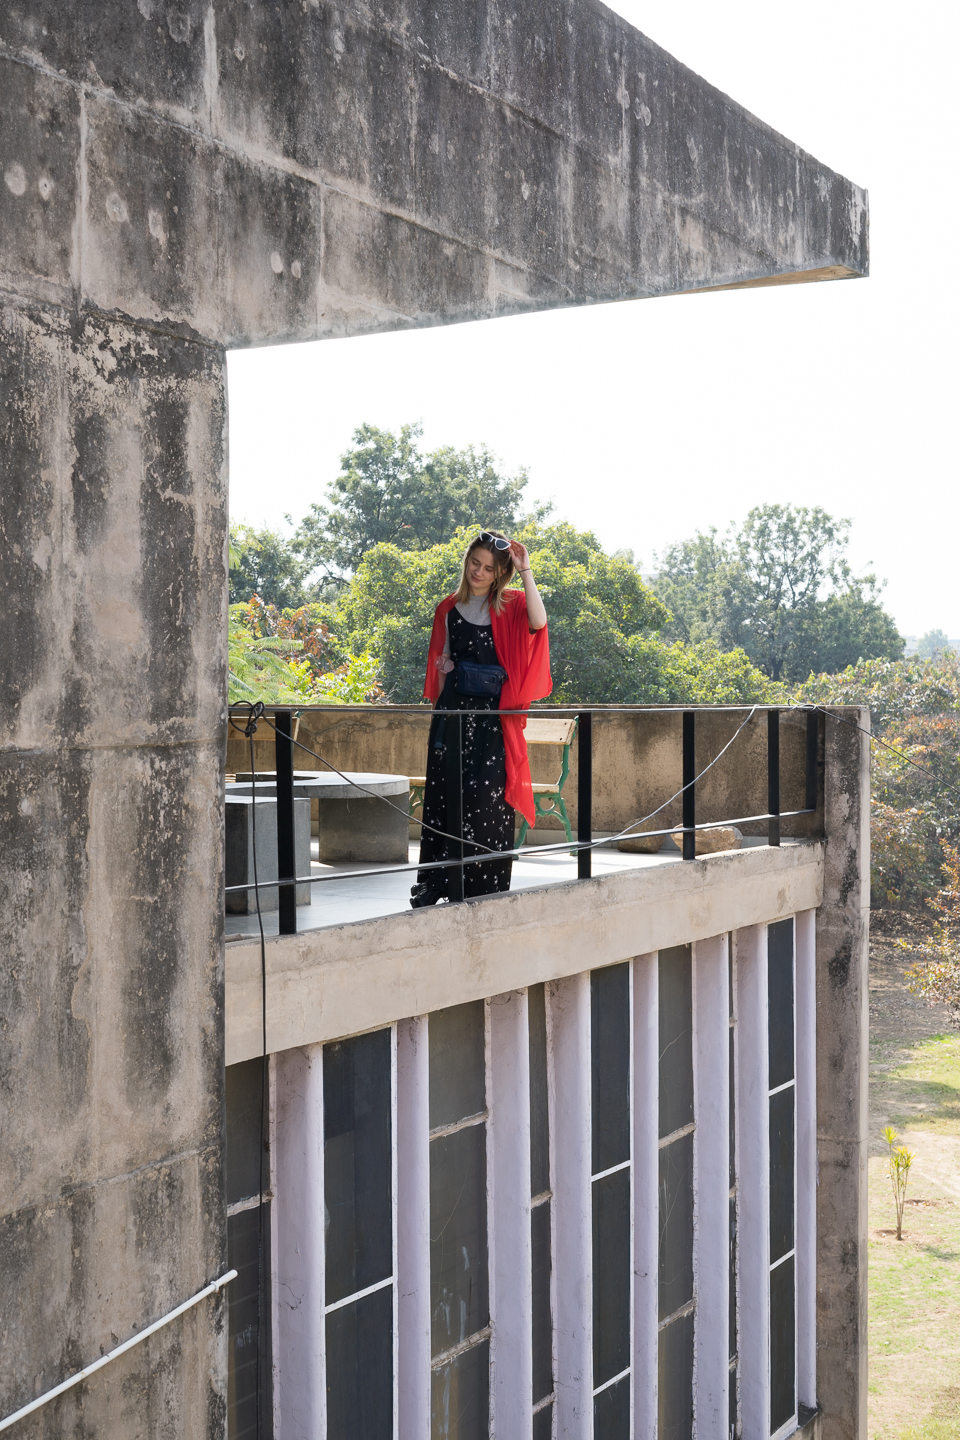 India, Chandigarh, travel, architecture, Le Corbusier